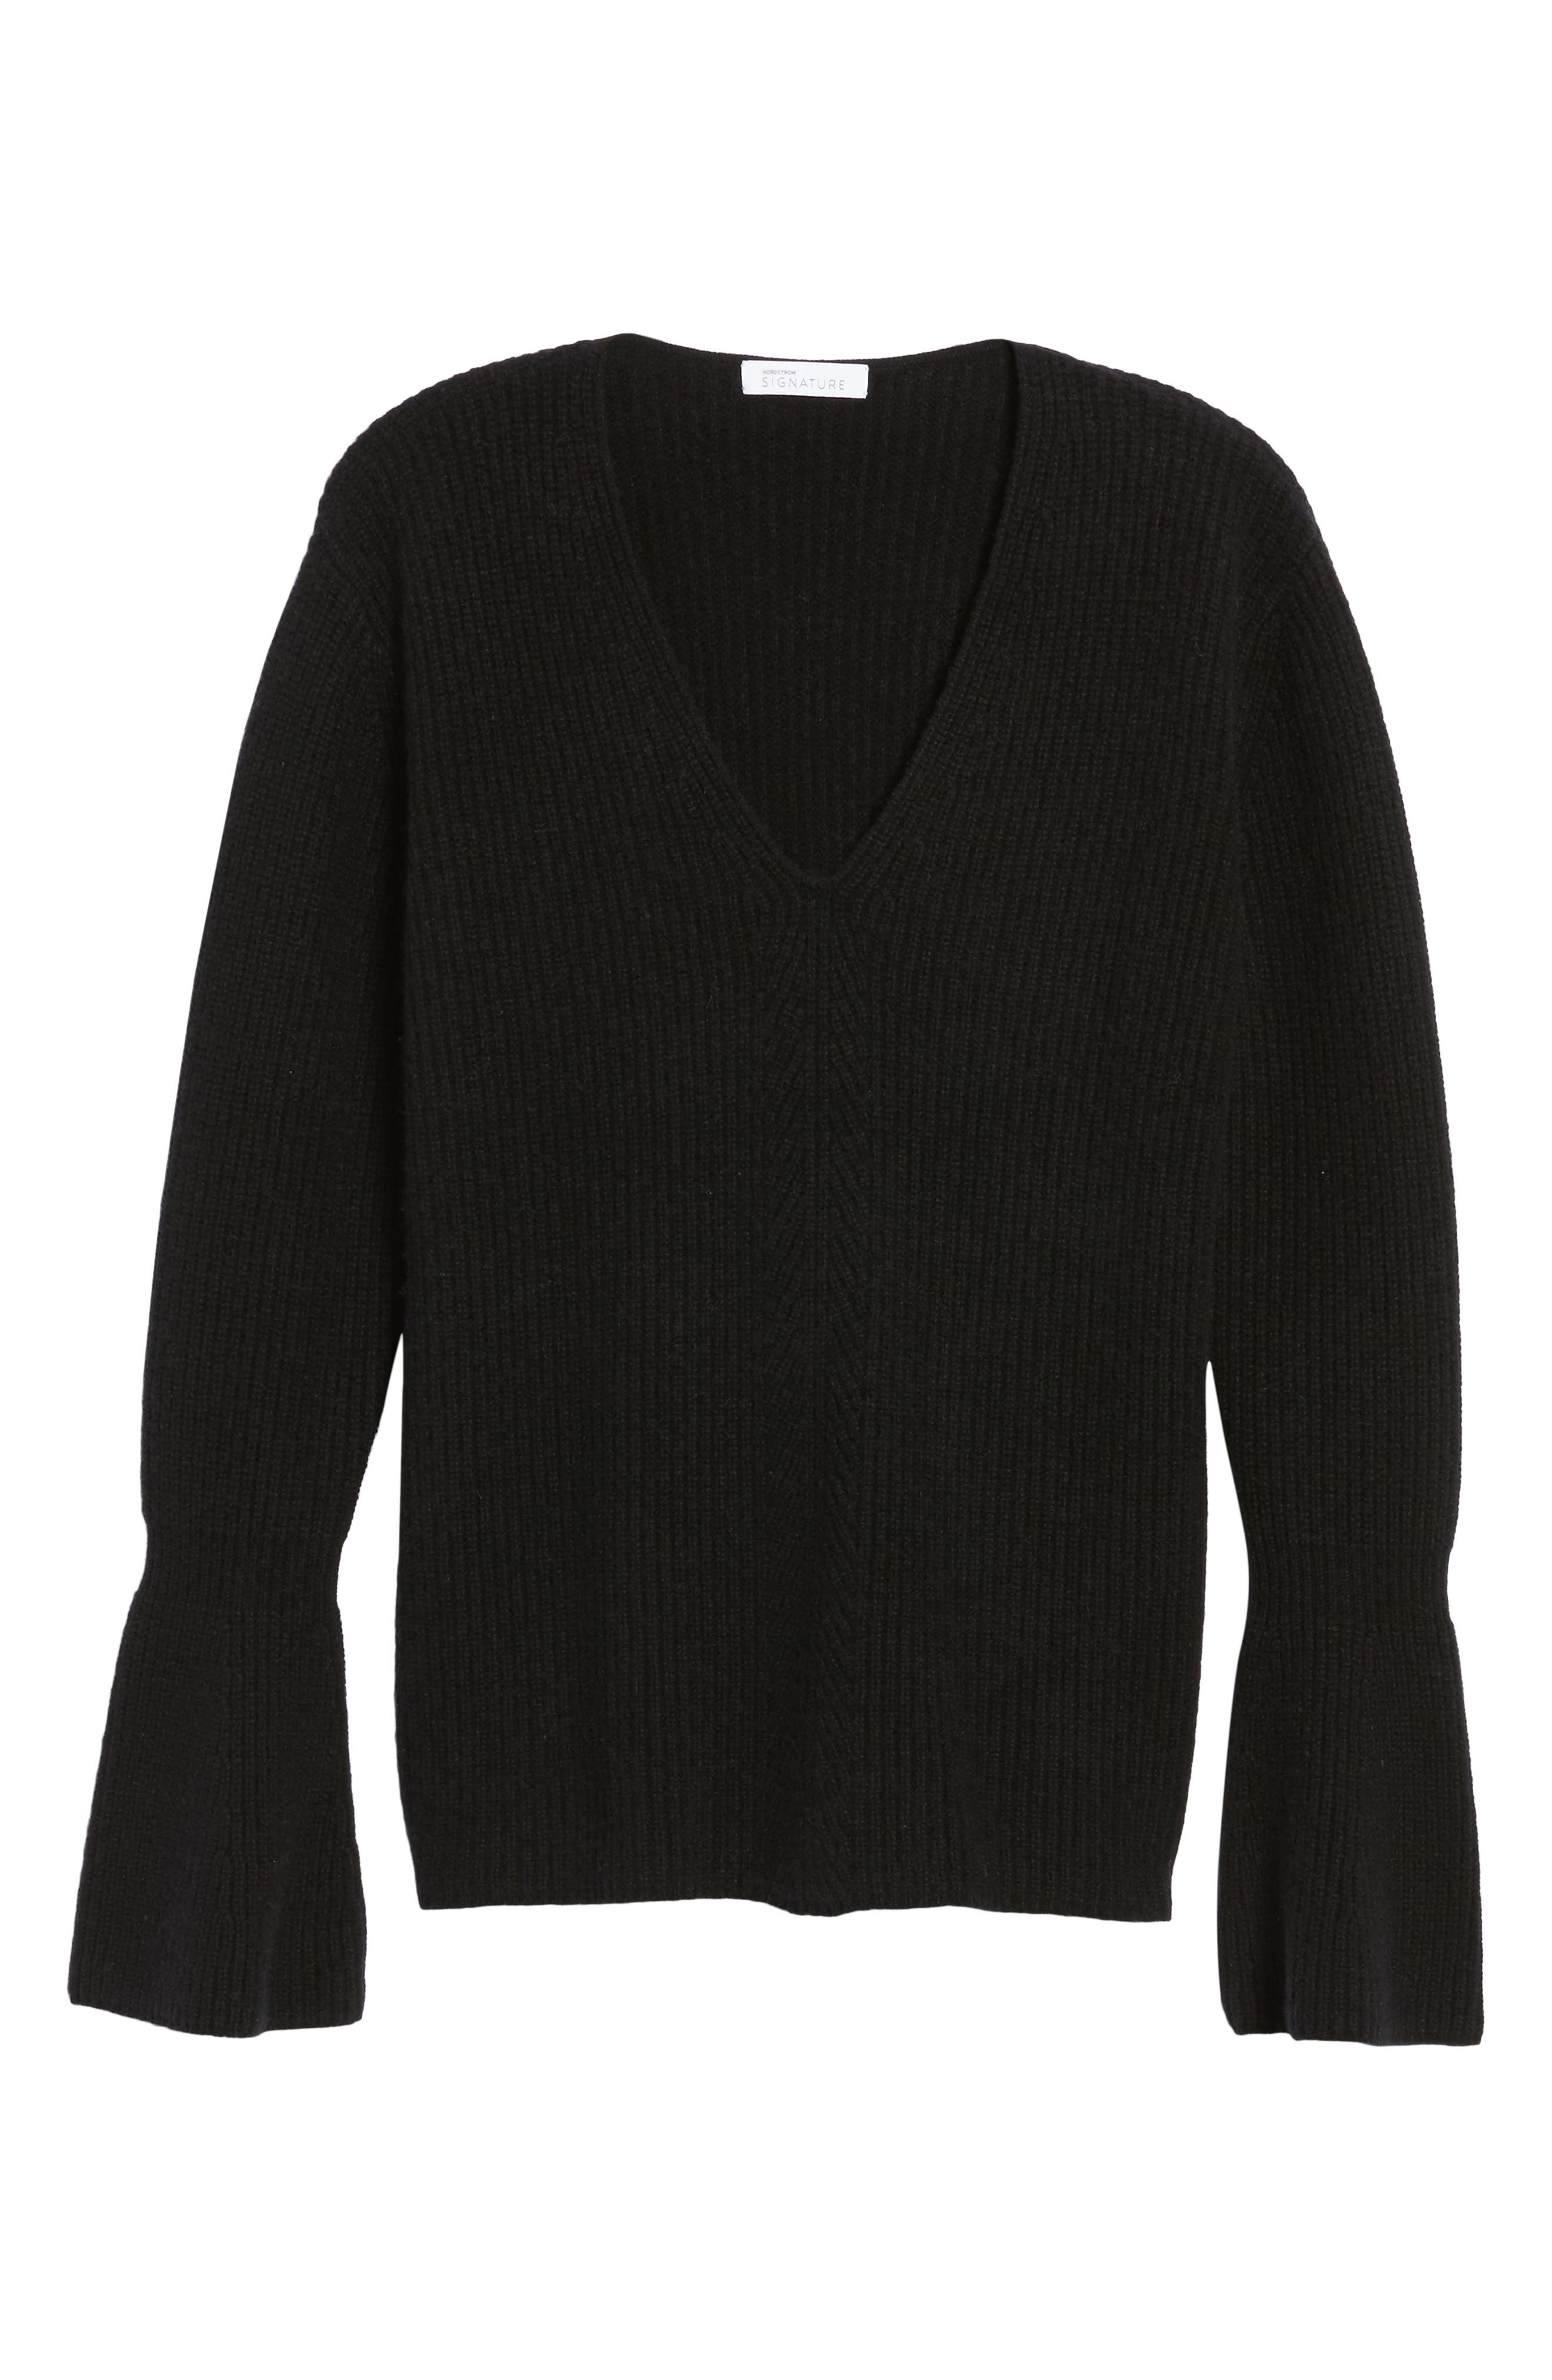 Rib Knit Cashmere Bell Sleeve Sweater,                             Alternate thumbnail 6, color,                             001